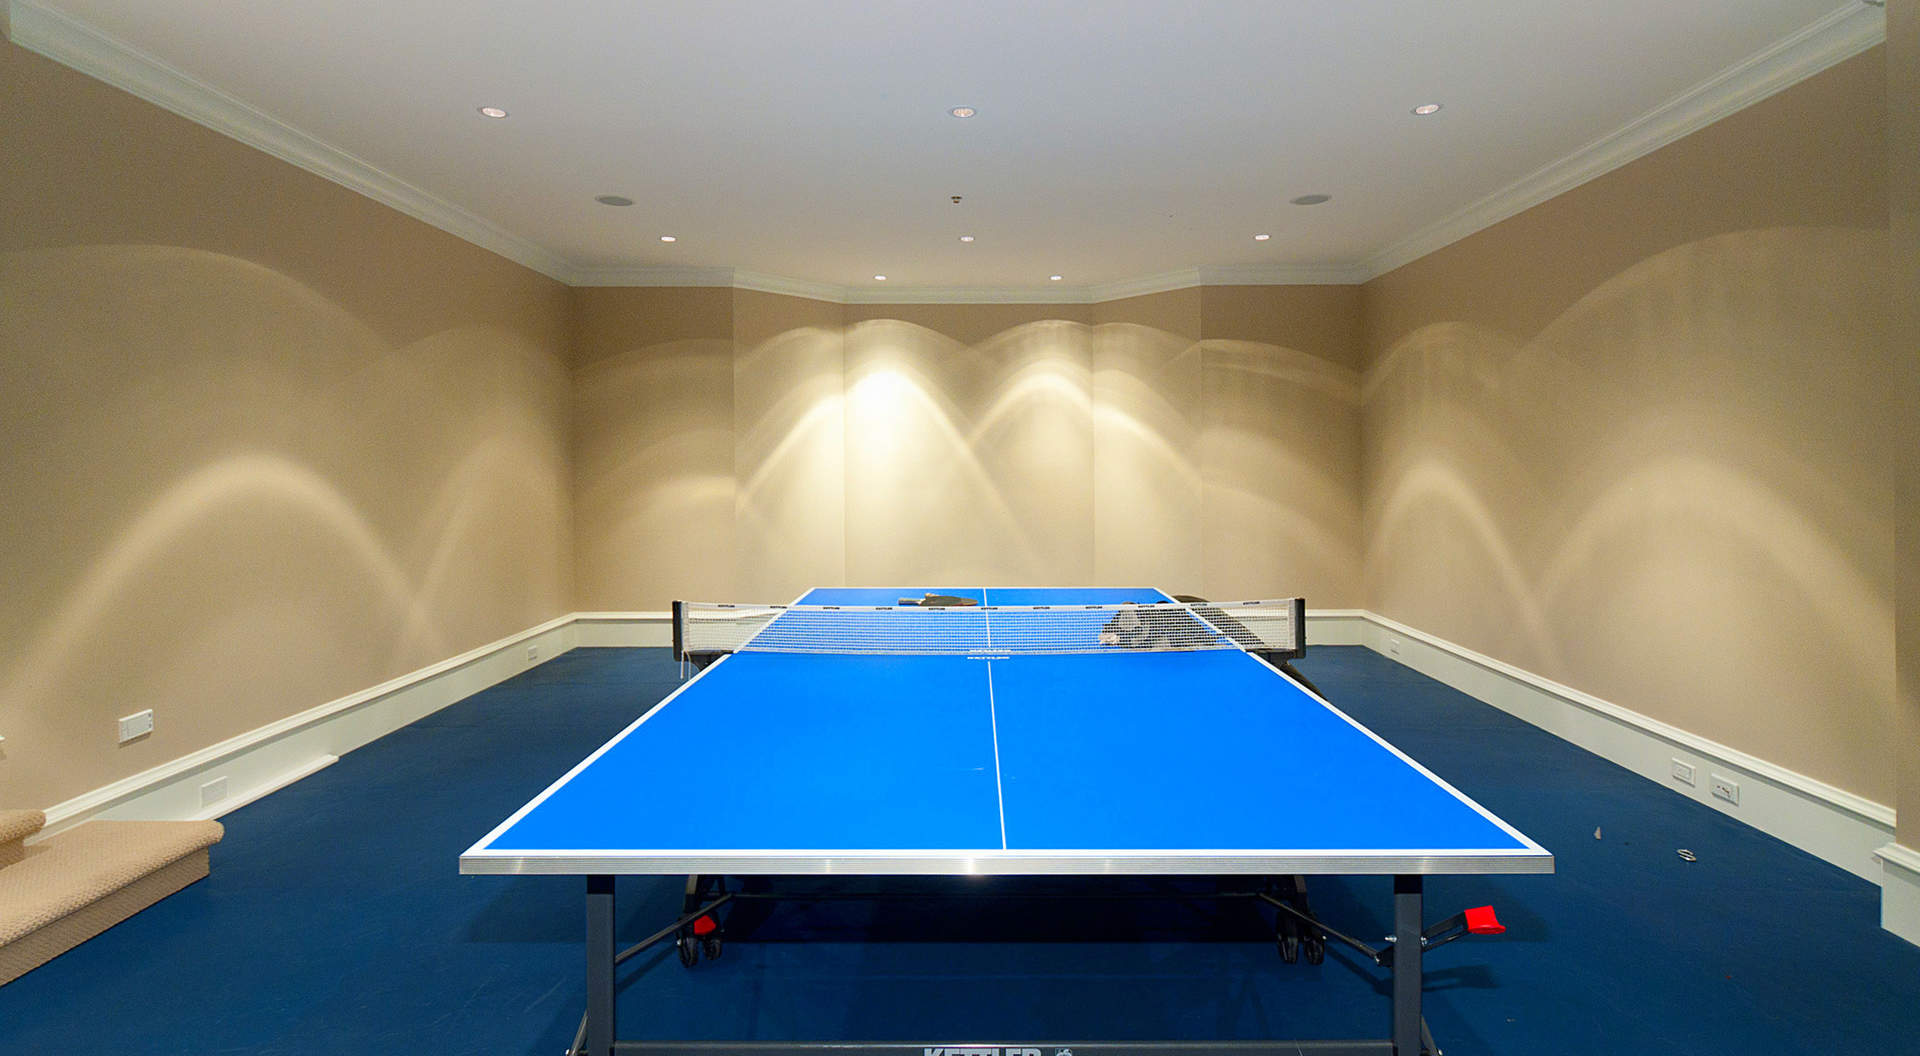 Games Room with Rubberized Flooring